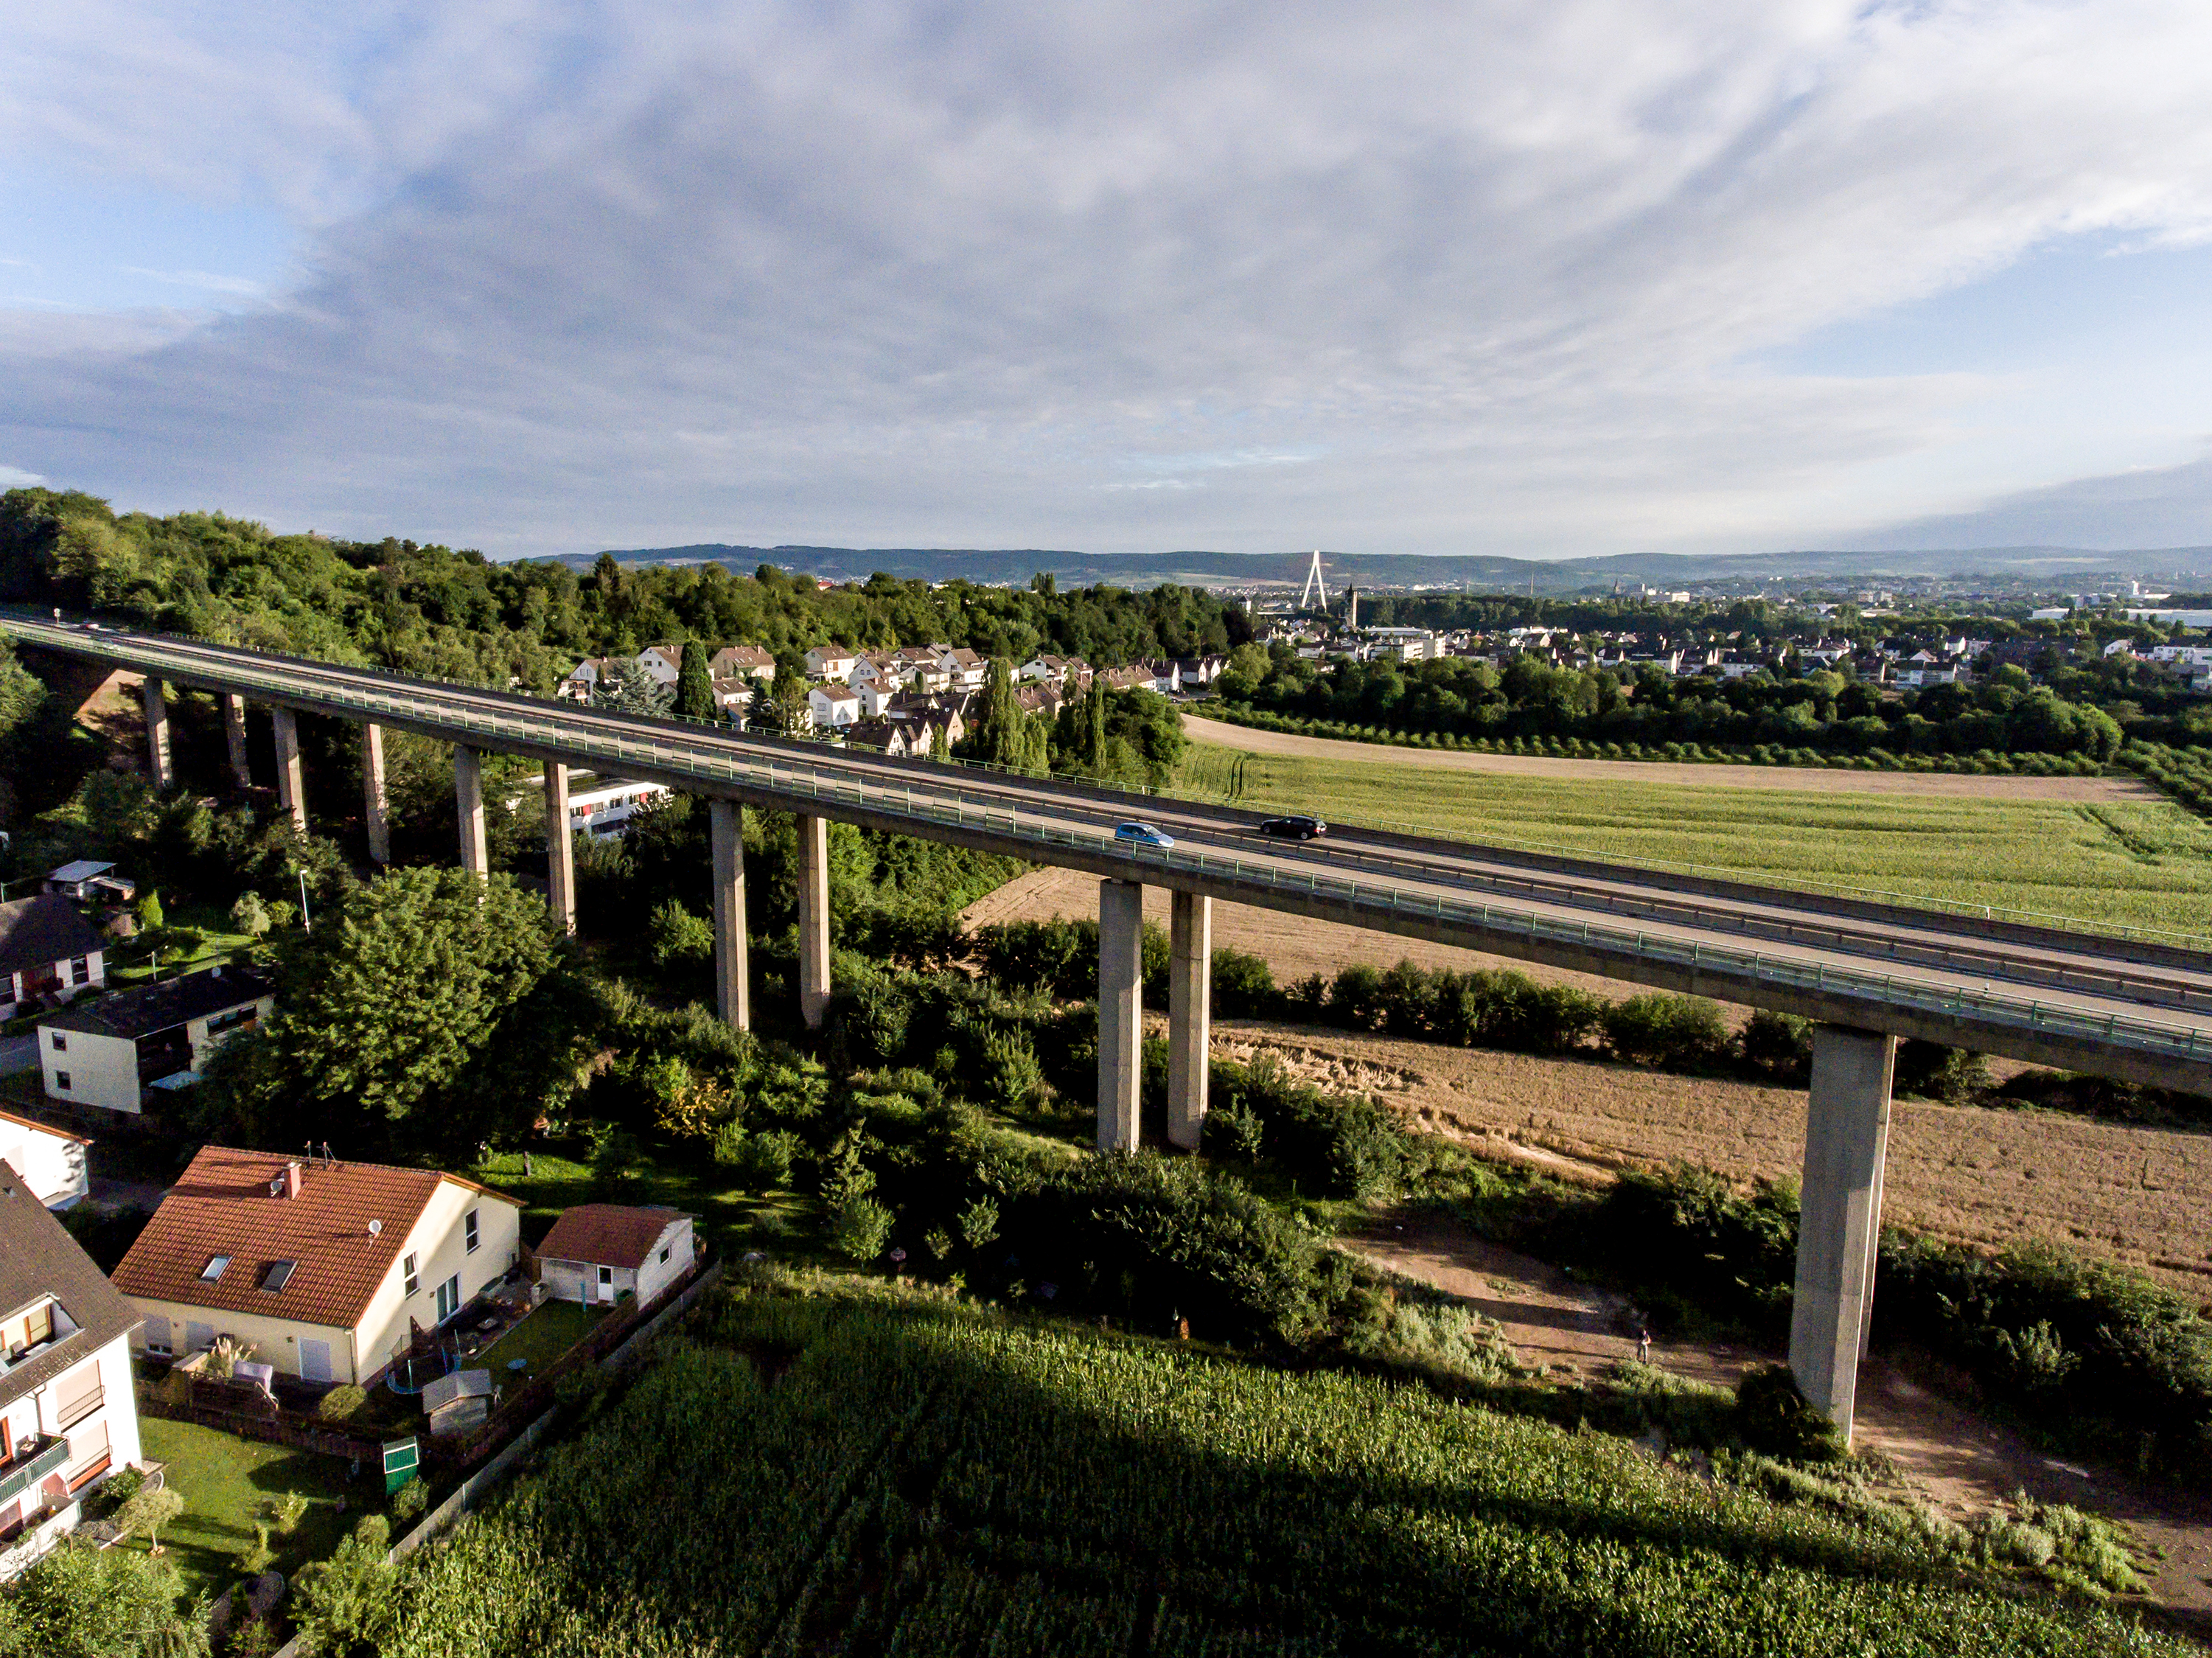 The view over bridge highway in Germany Koblenz Andernach on a sunny day